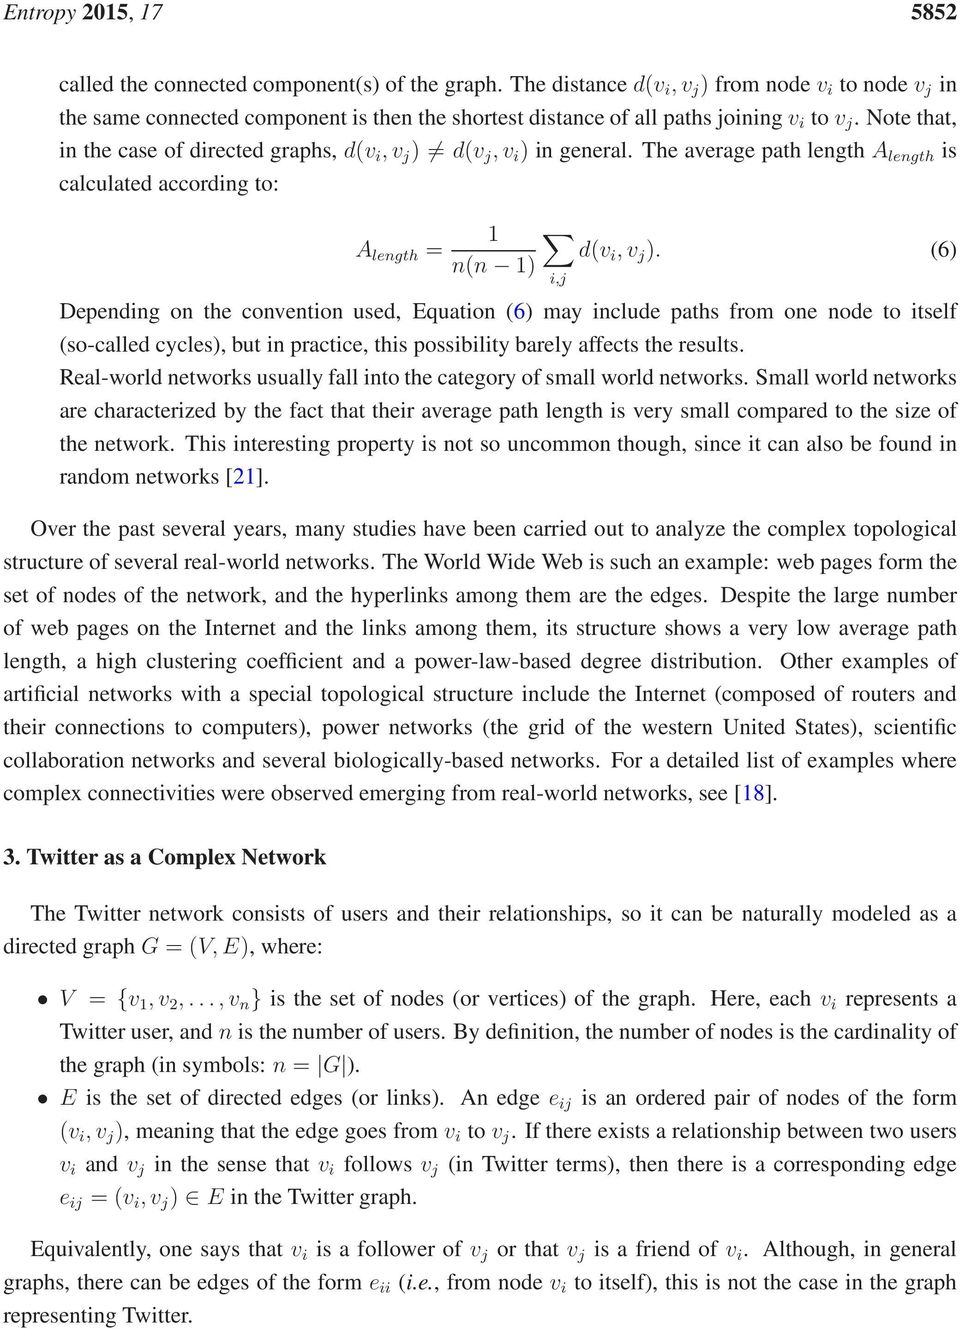 A Model for Scale-Free Networks: Application to Twitter - PDF